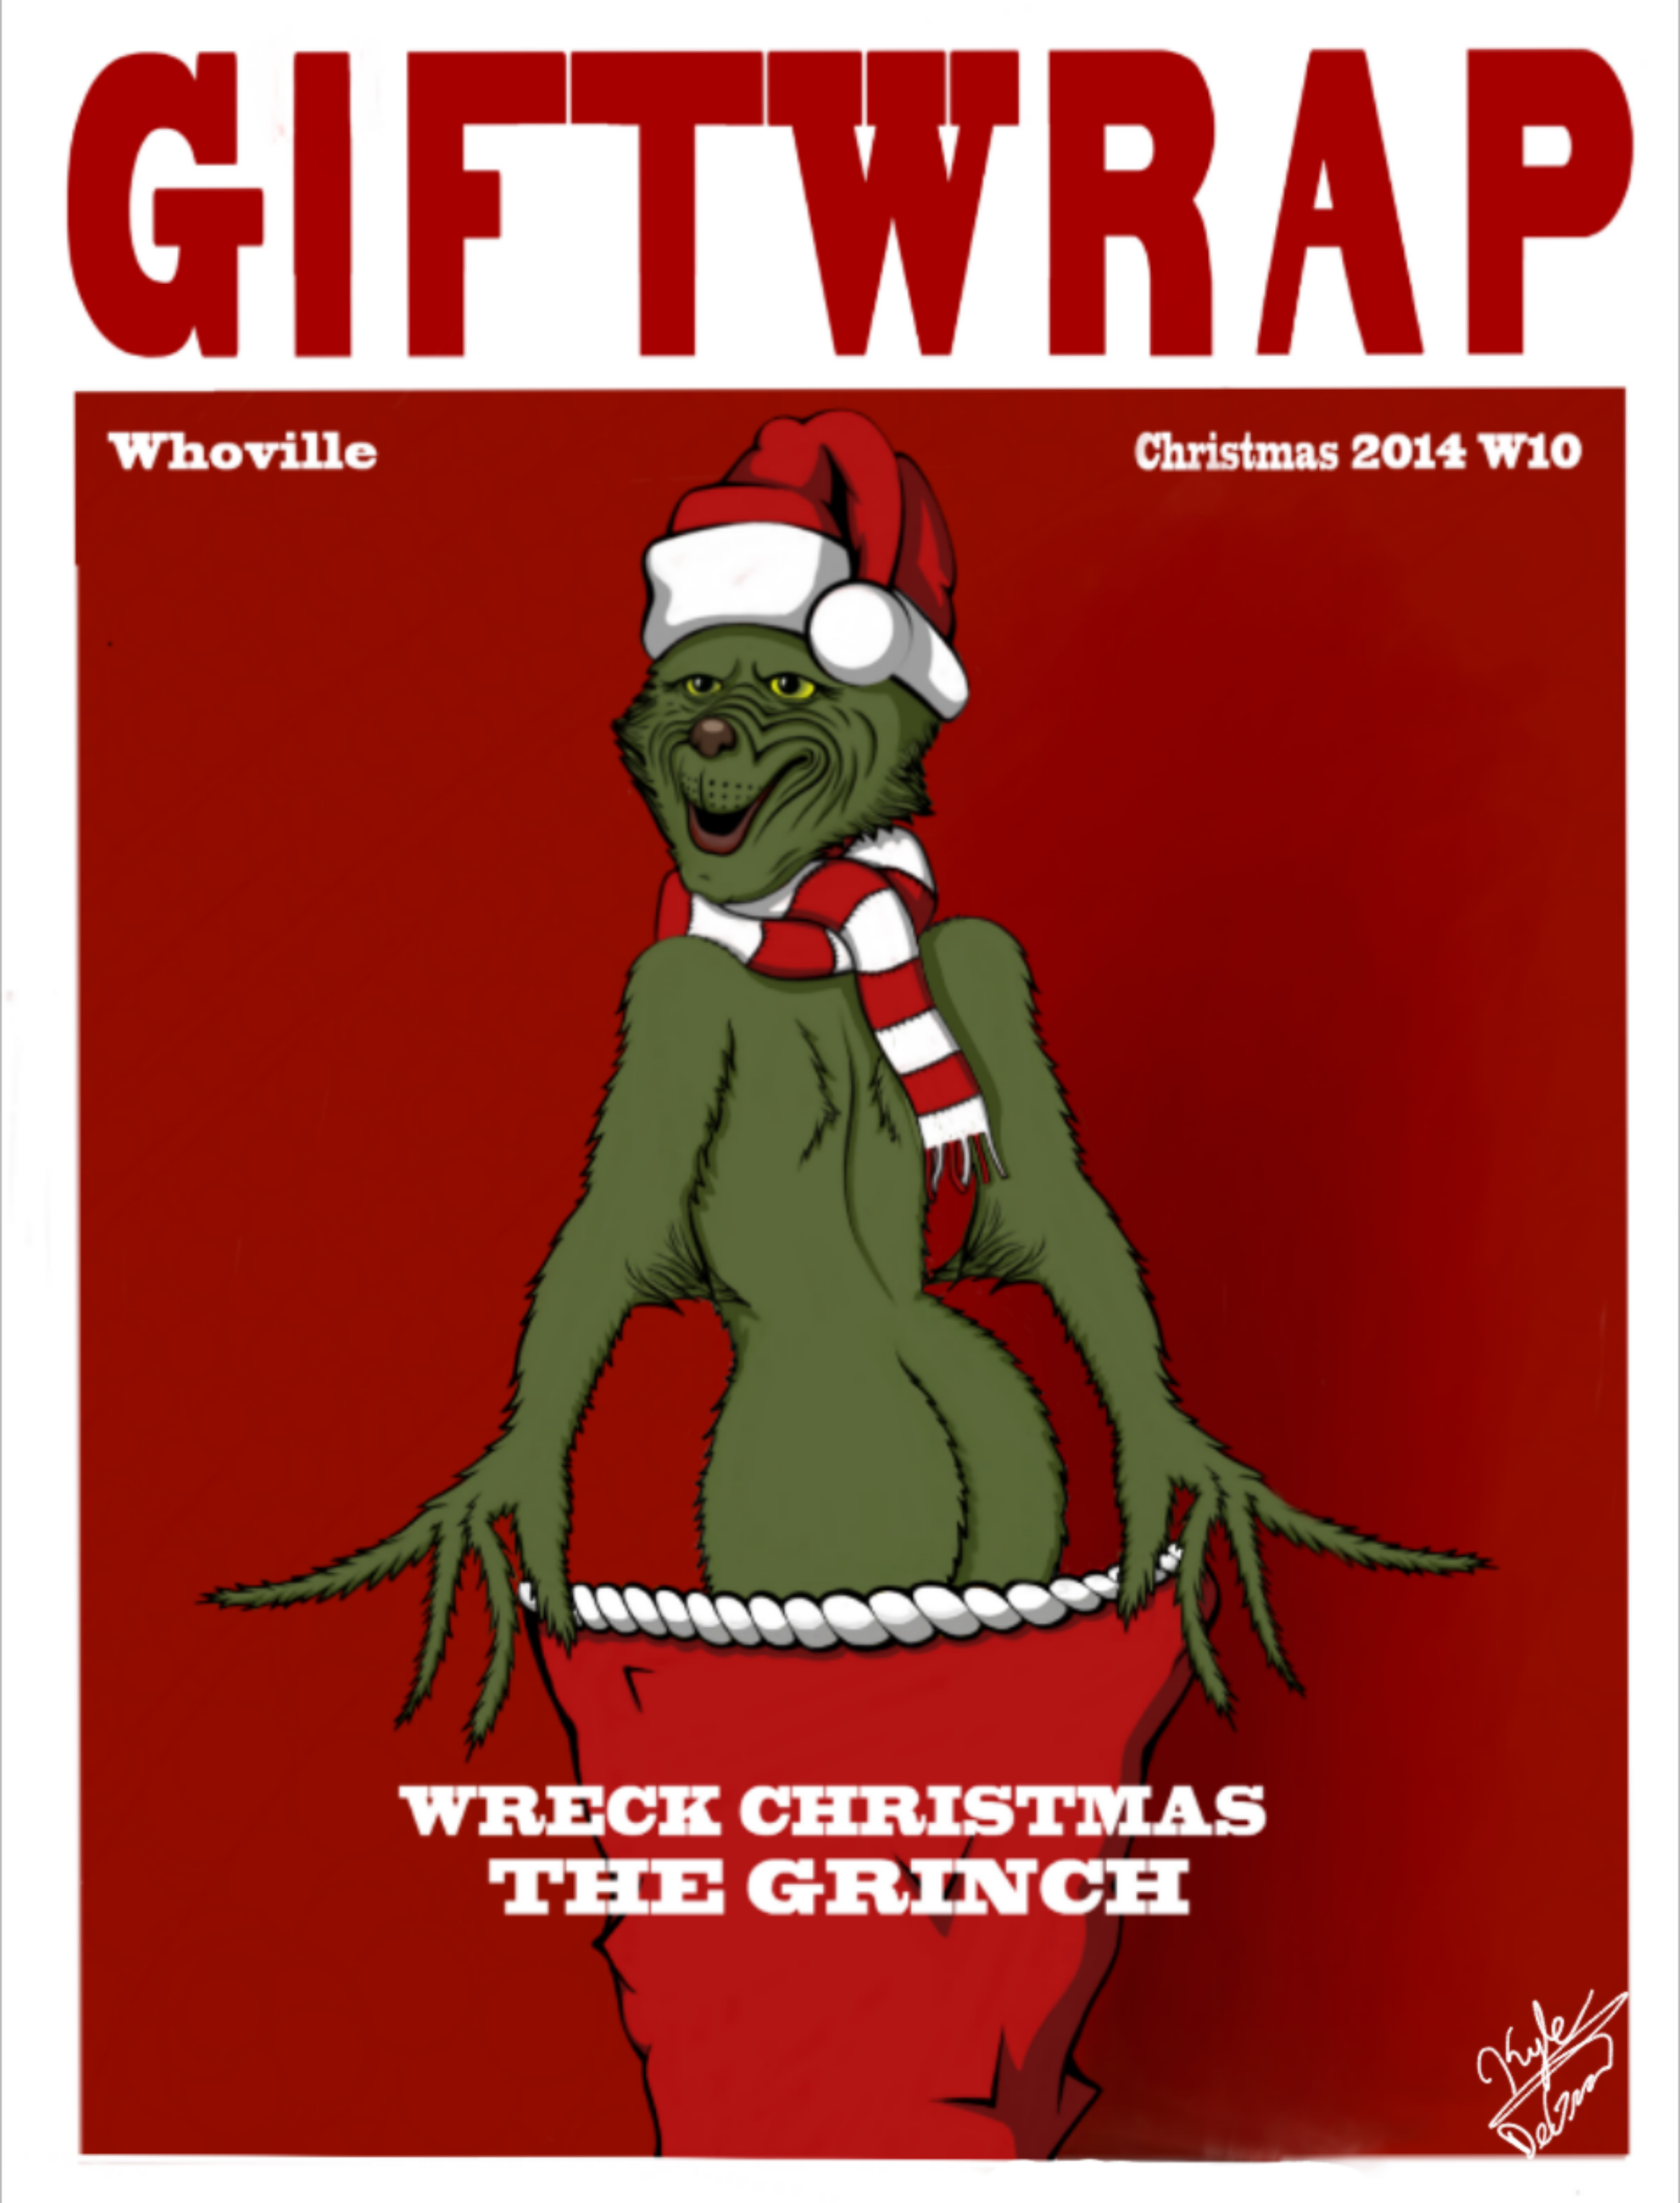 WRECK CHRISTMAS ~ The Grinch